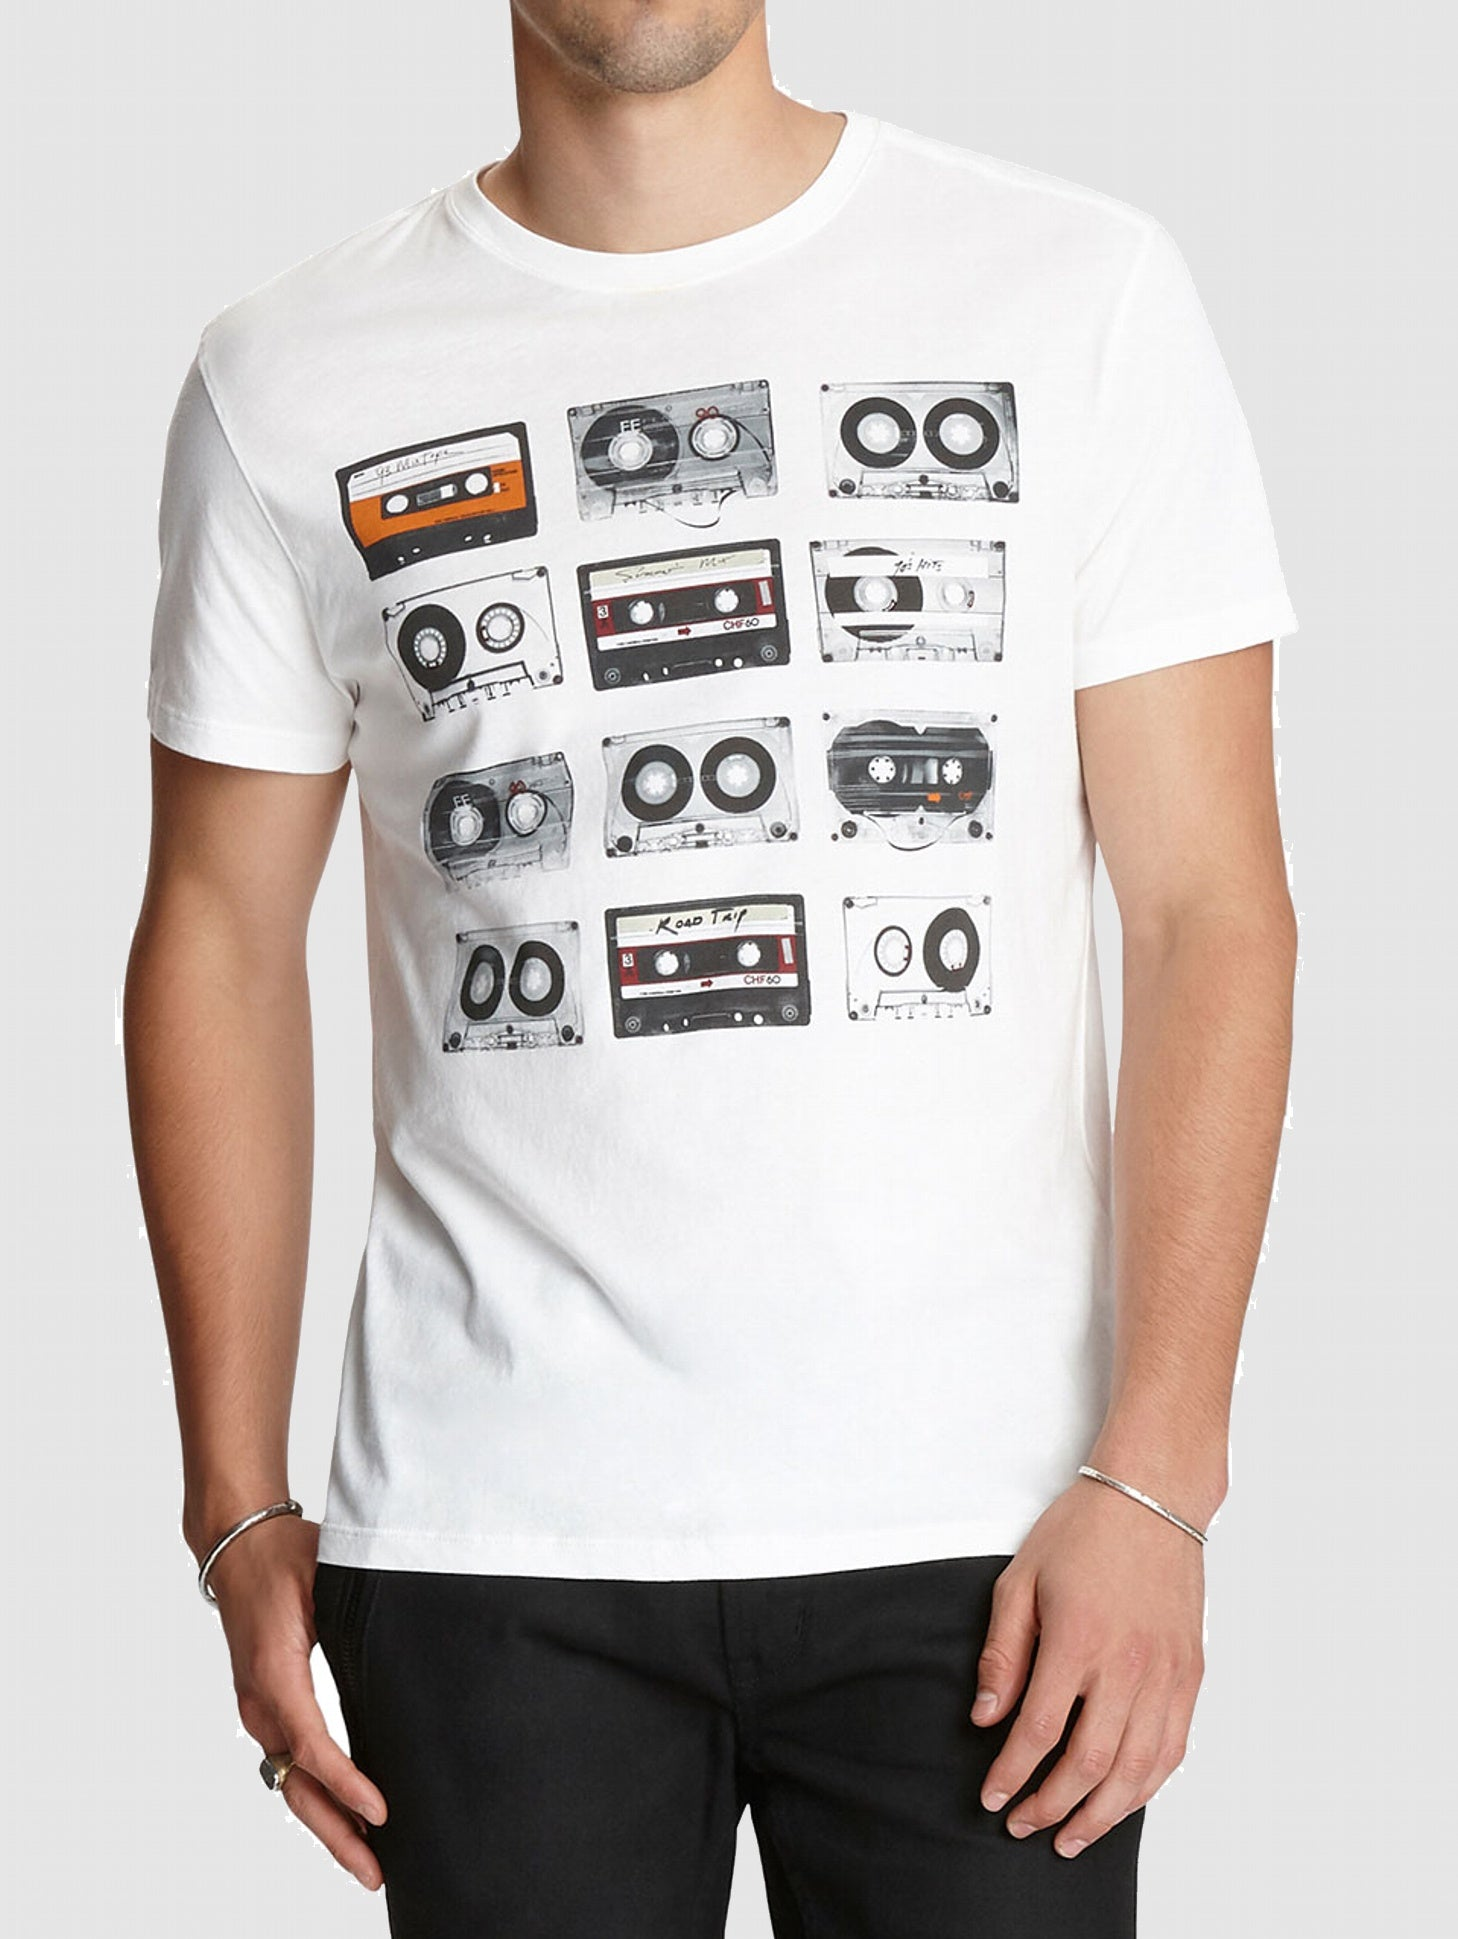 John Varvatos Tapes Graphic Tee -Salt